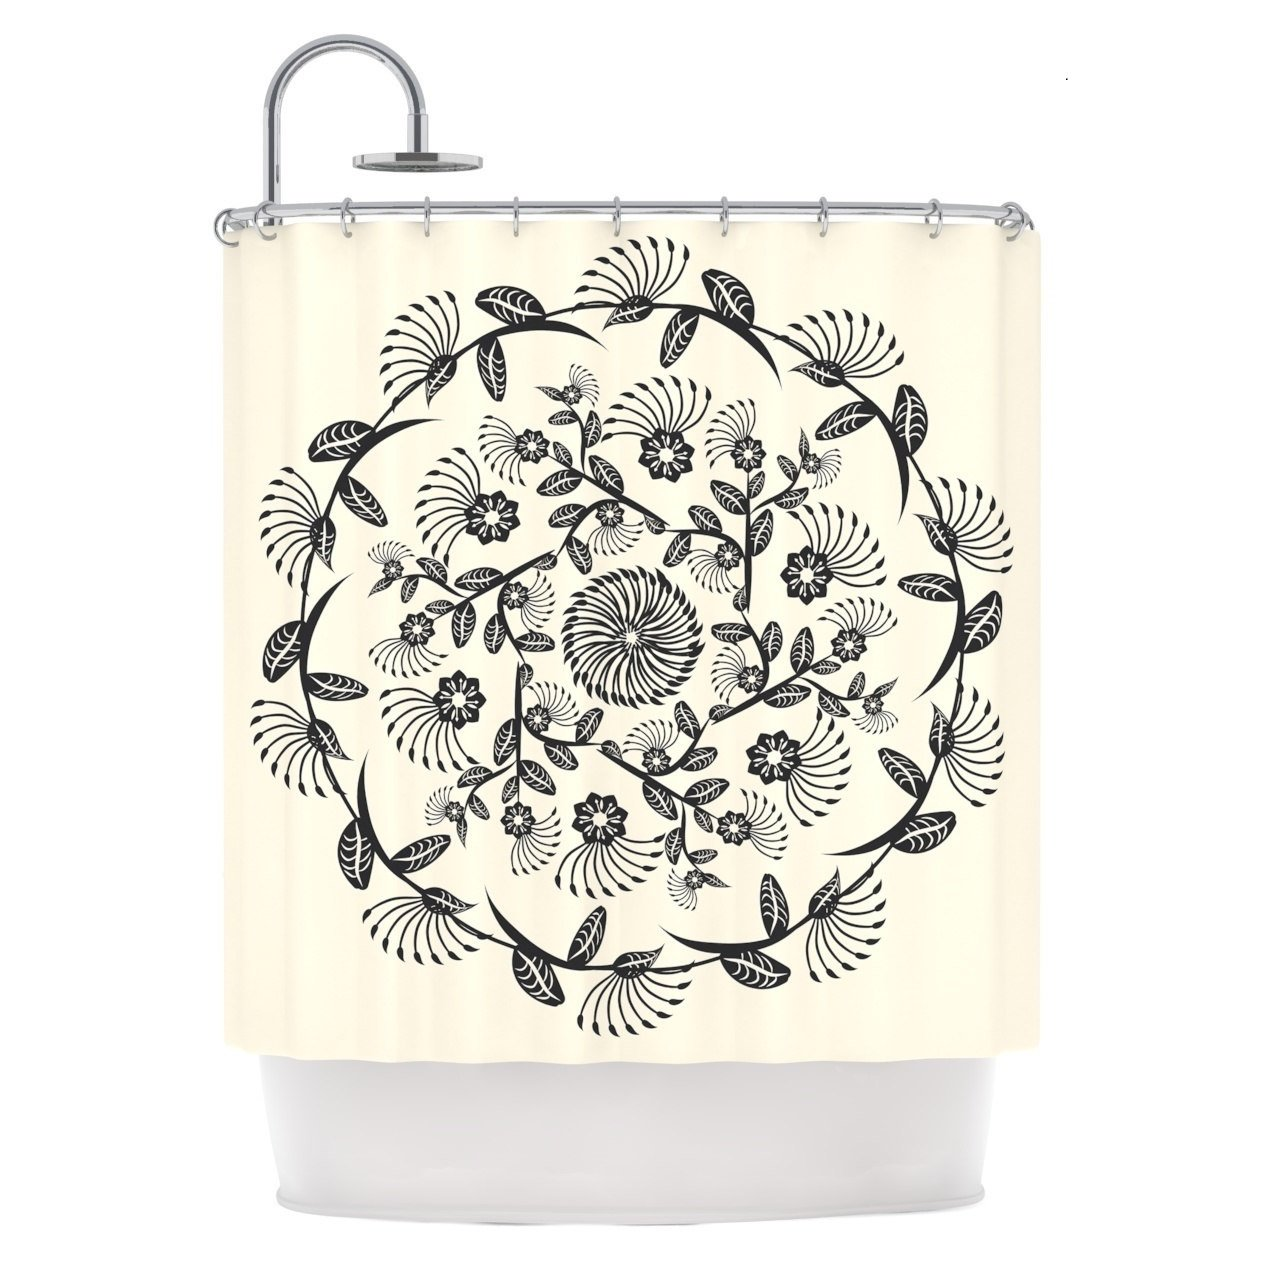 Nature Floral Medallion Style, Elegant Top Shower Curtain, Bright Classic Garden Flowers Motif, Premium Modern Home Adults Kids Bathroom Decoration, Geometric Mandala Theme, Black, Cream, Size 69 x 70